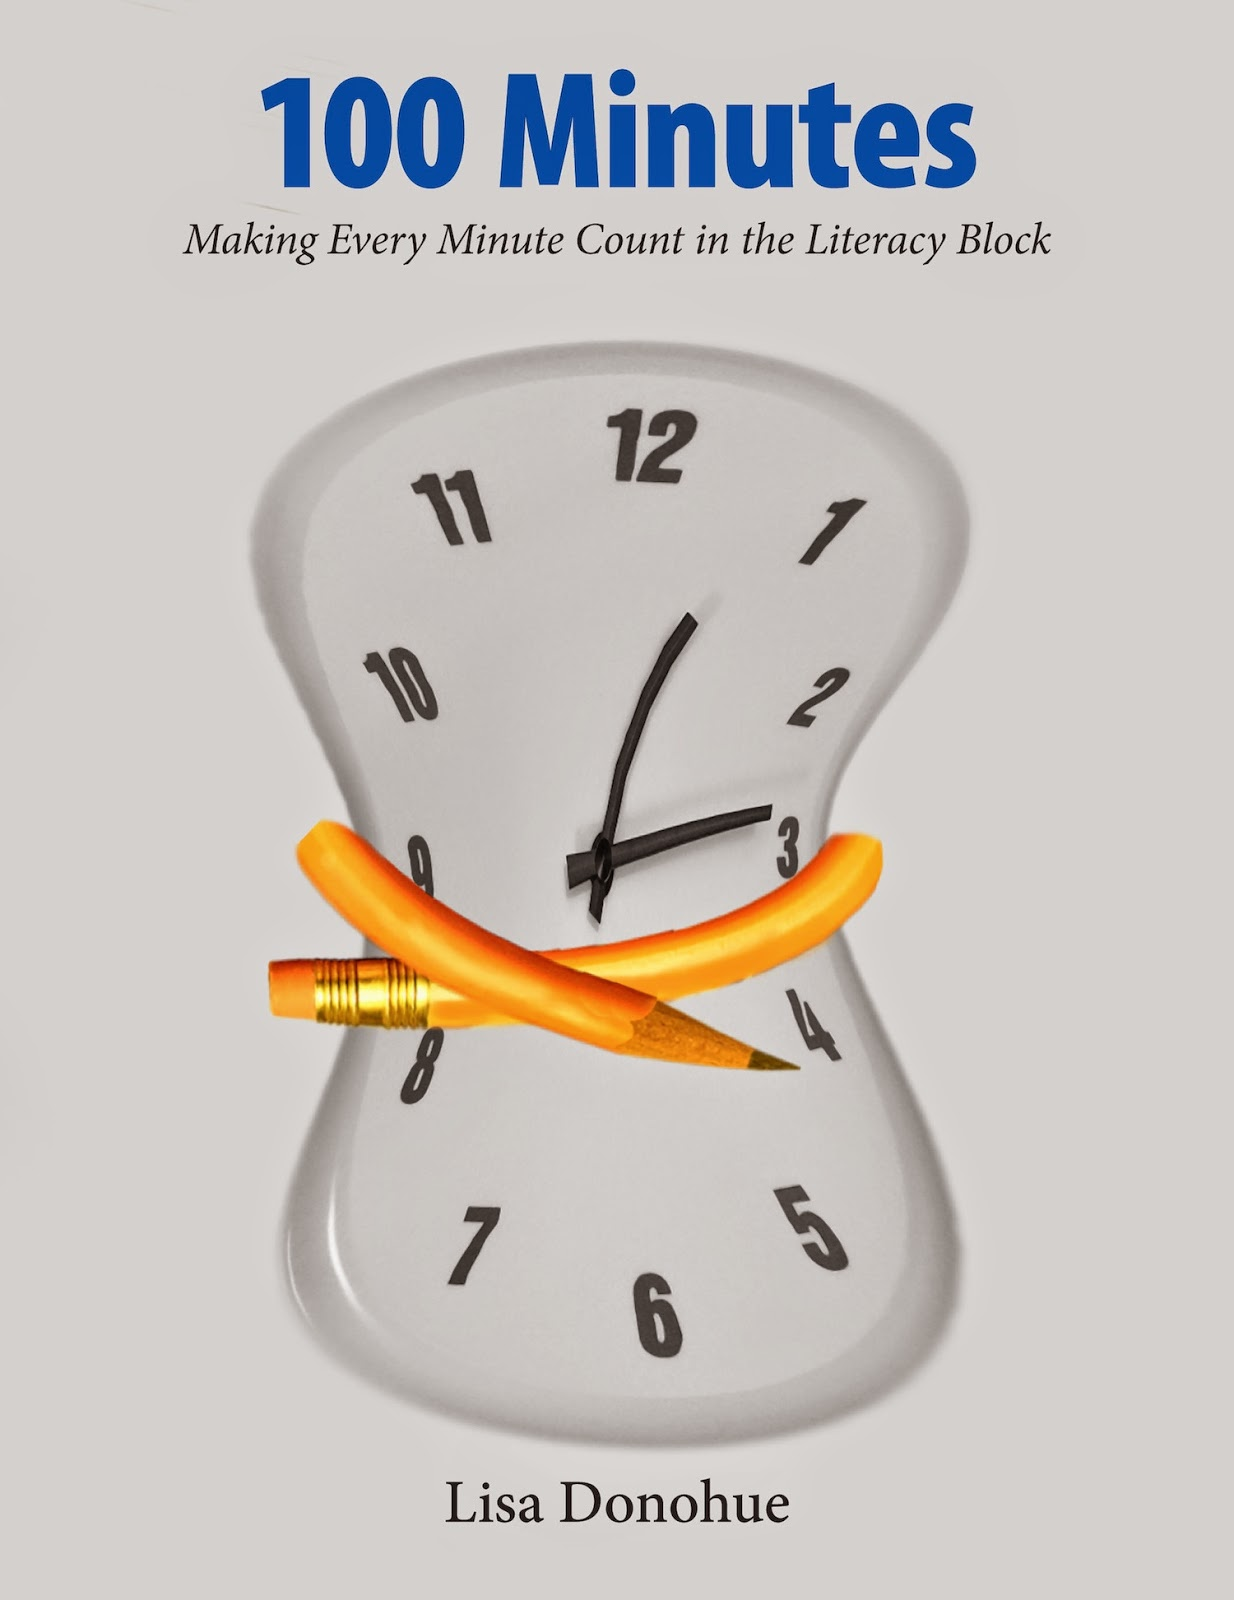 http://www.amazon.com/100-Minutes-Making-Minute-Literacy/dp/1551382768